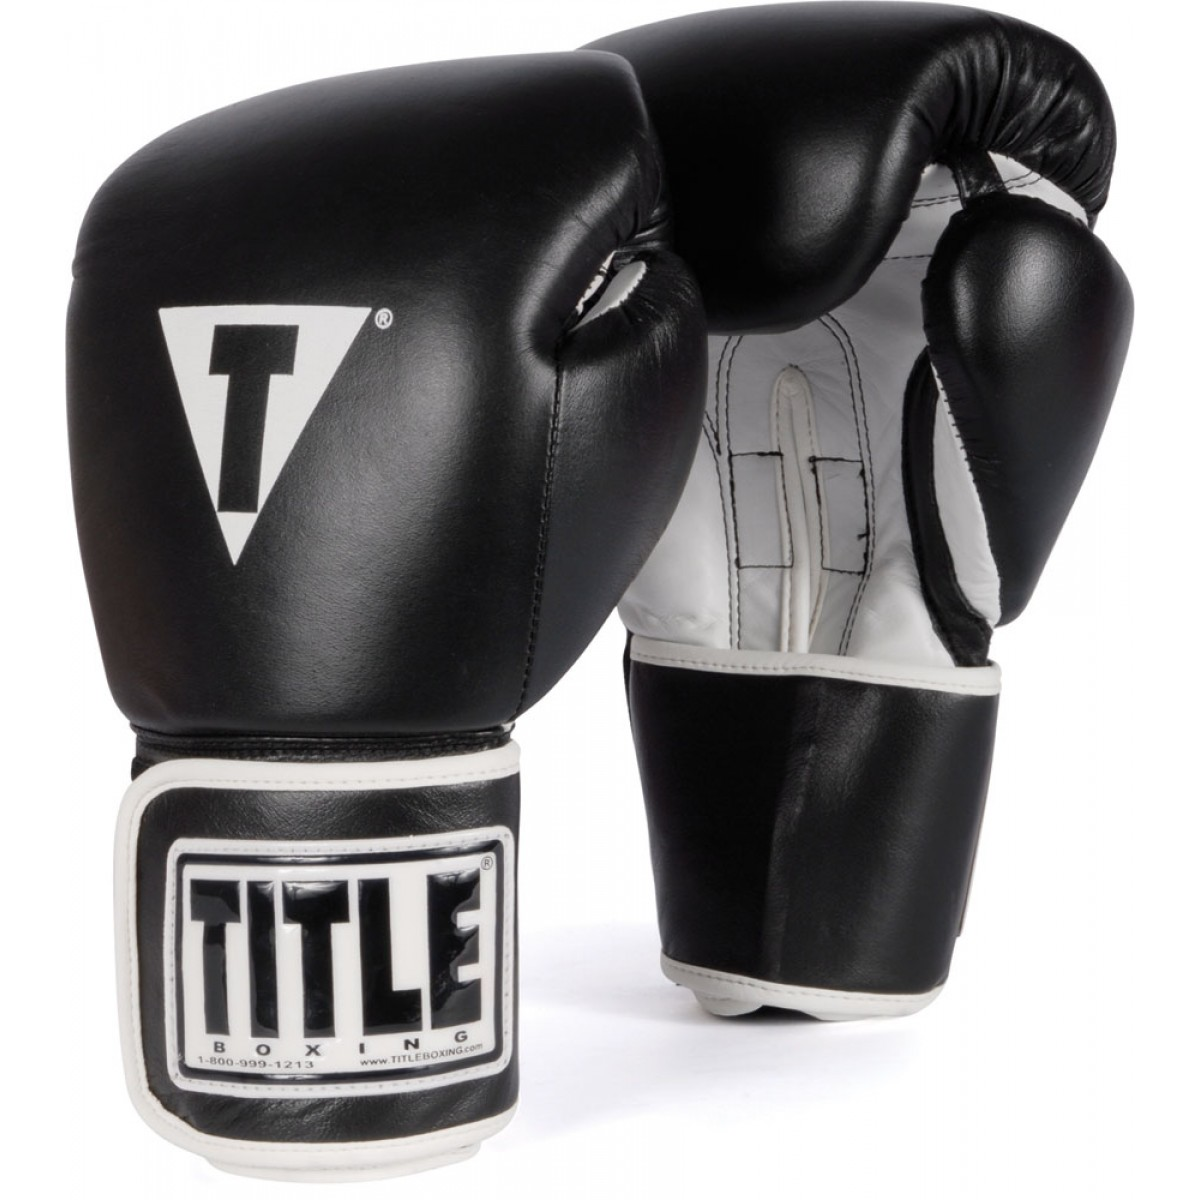 16oz Title Boxing Gloves